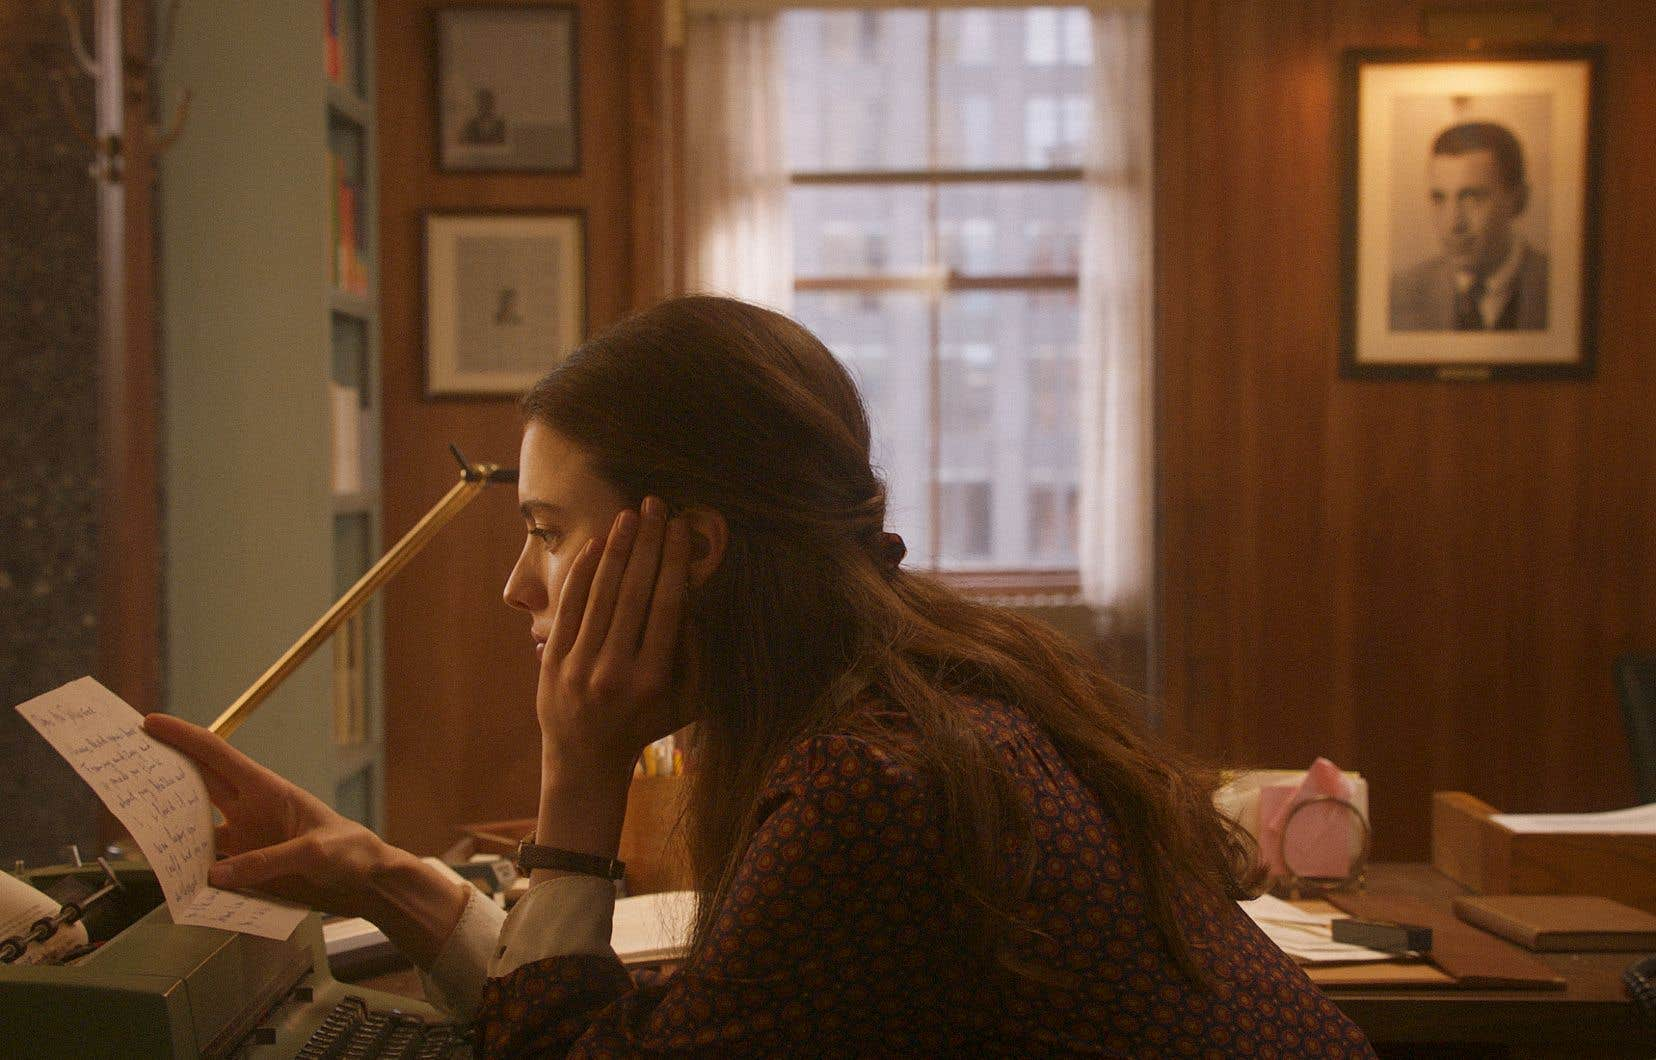 Le film bénéficie de performances accomplies de la part d'une distribution bigarrée, à commencer par celle de Margaret Qualley.